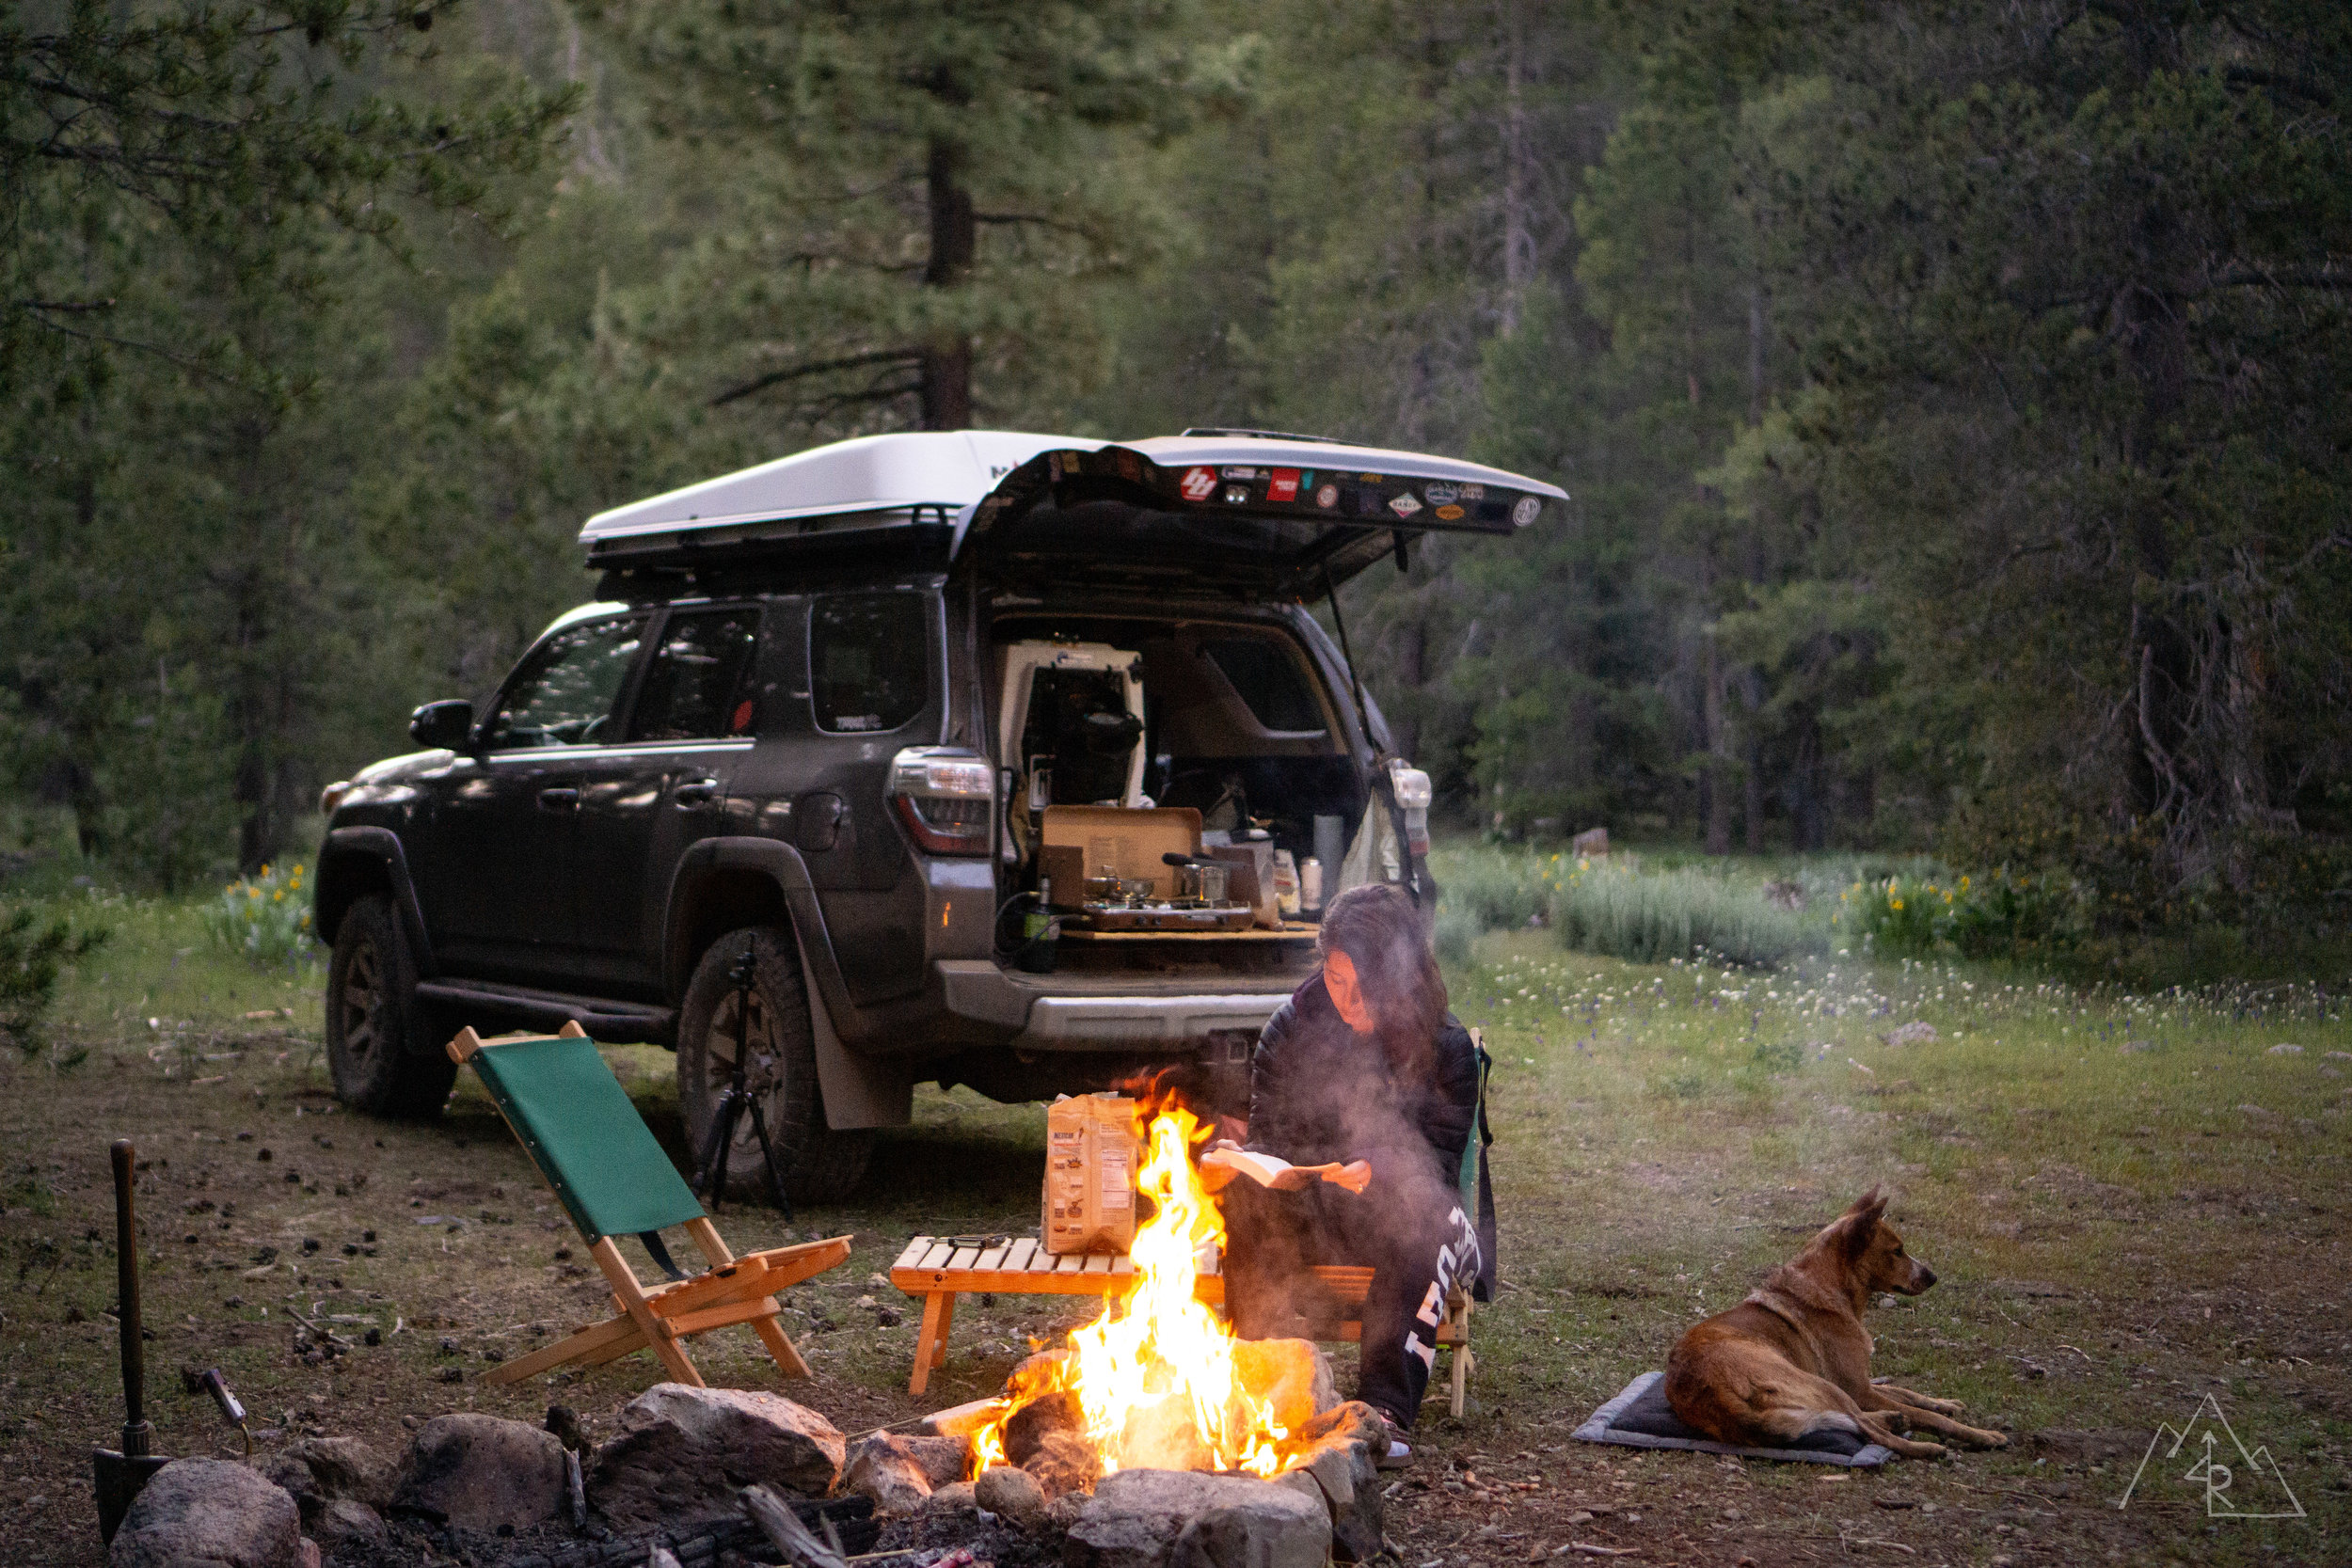 MosquitoCamping_072019-64.jpg